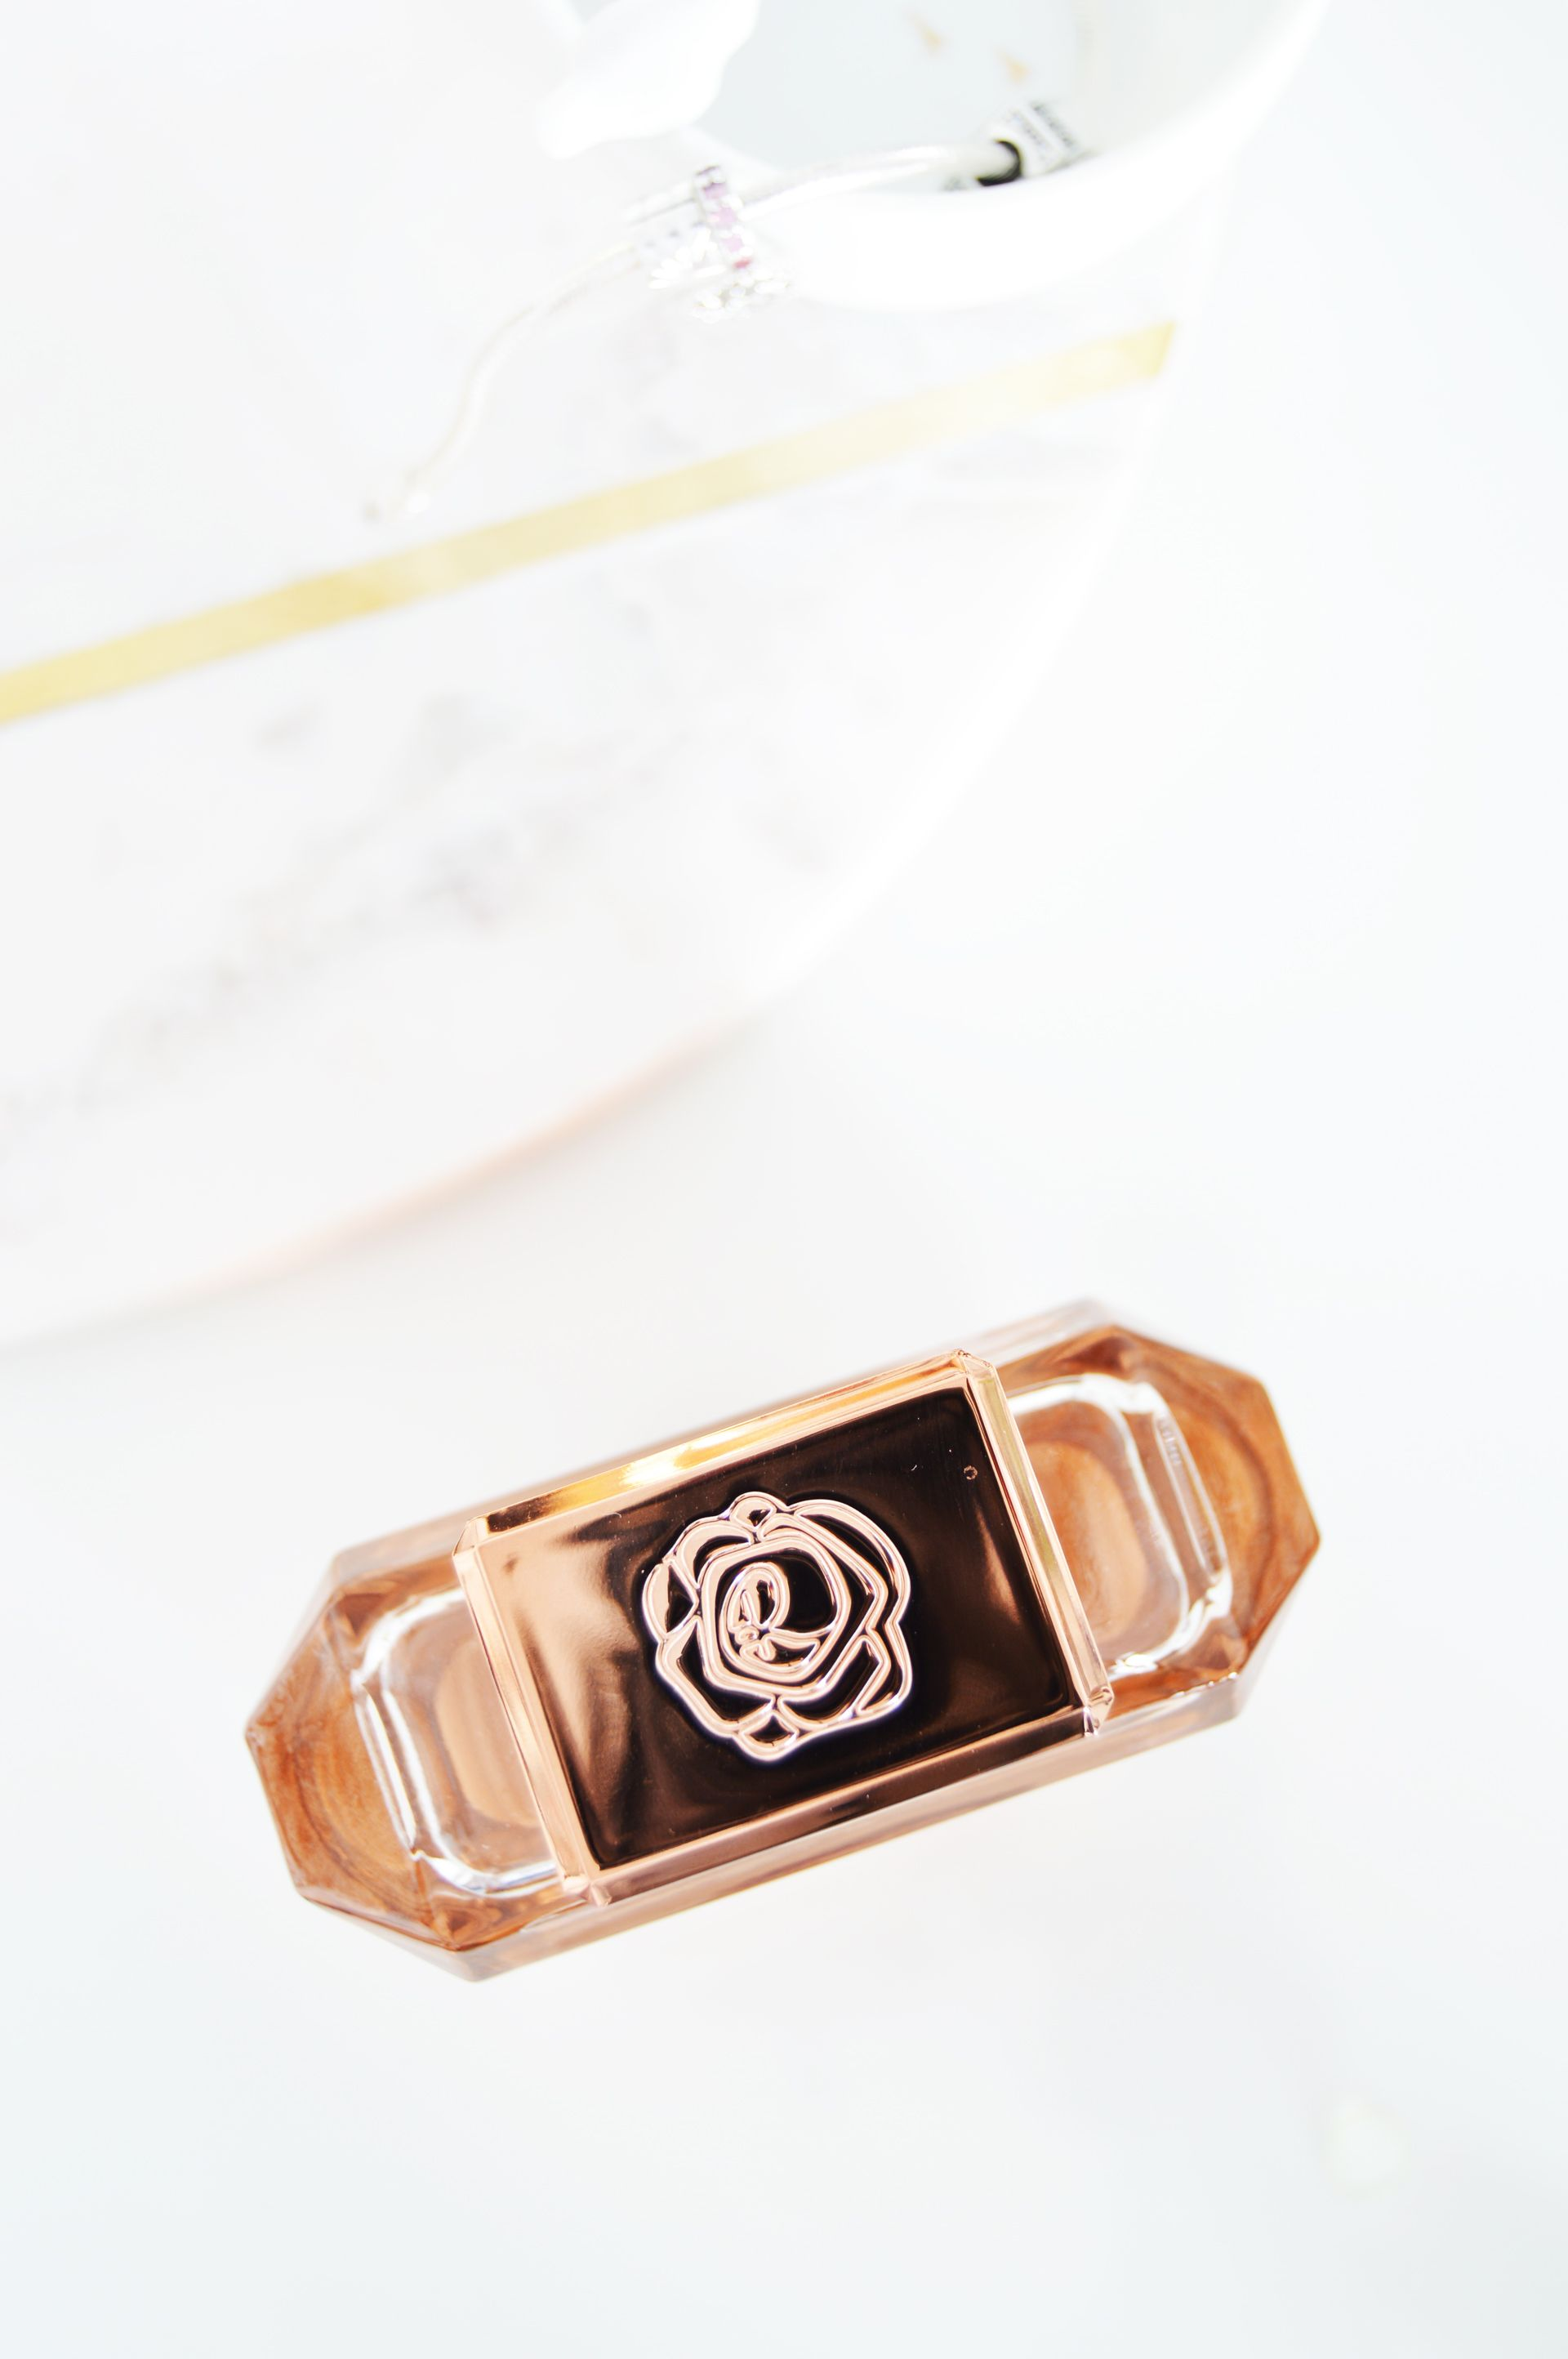 """Rosie for Autograph Rose Gold is described as """"Elegant, airy bergamot and soft spices are wrapped in smooth, floral bouquet notes..."""" and it smells as good as it's described. It is elegant, it is soft and it is refreshing. 